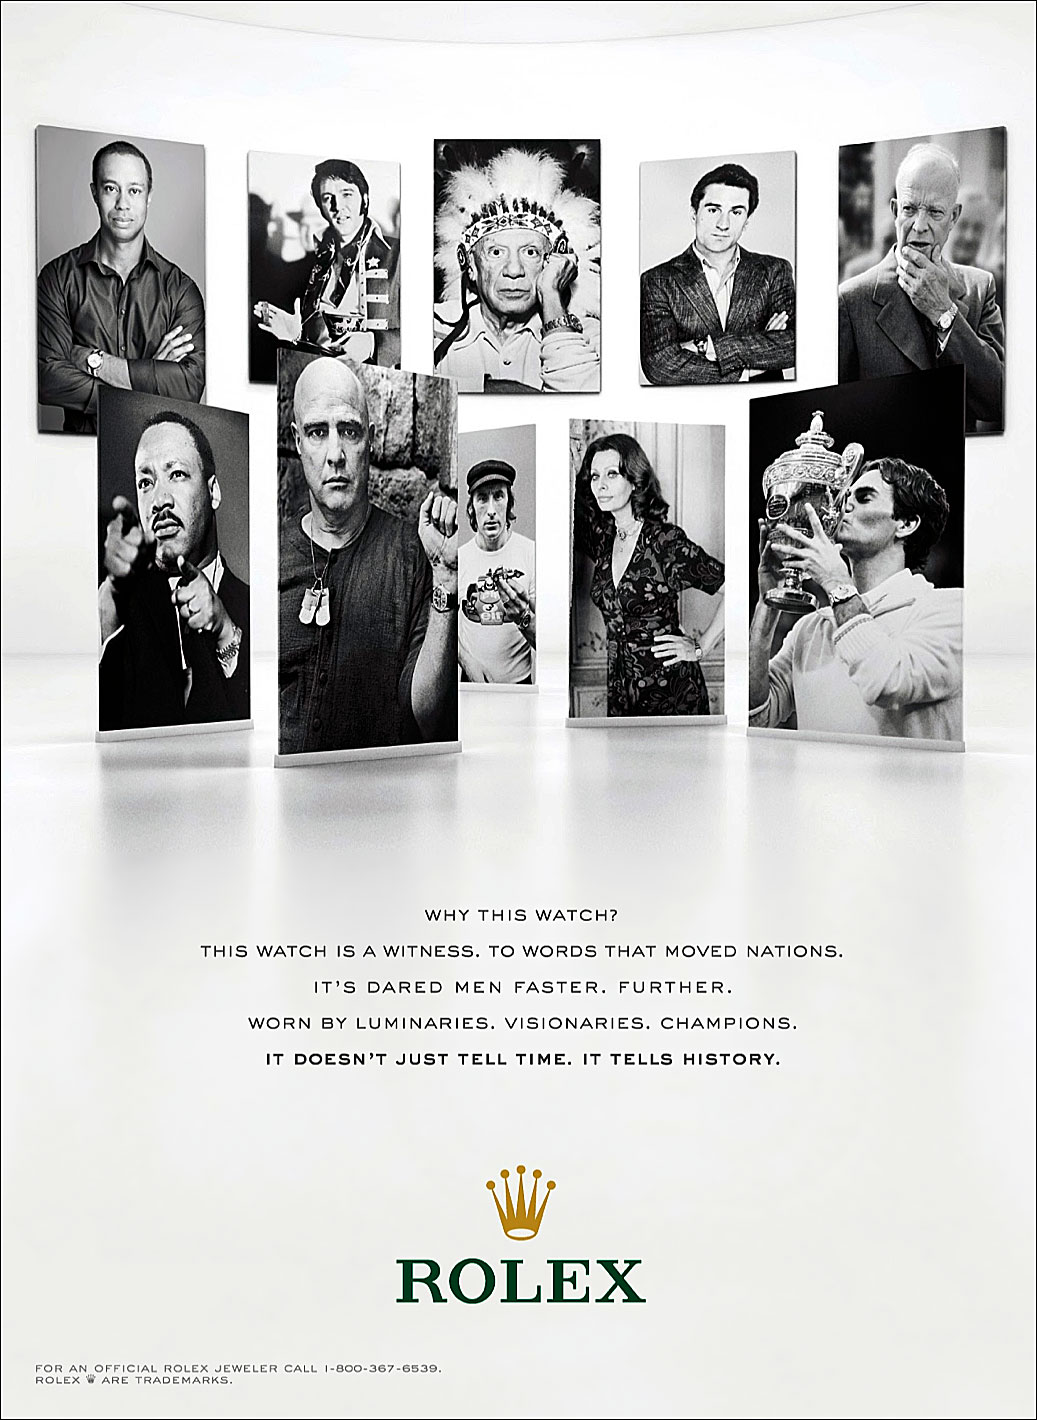 Rolex-Luminaries,-Visionaries,-Champions-Ad-New-Yorker-May-20-2013.jpg